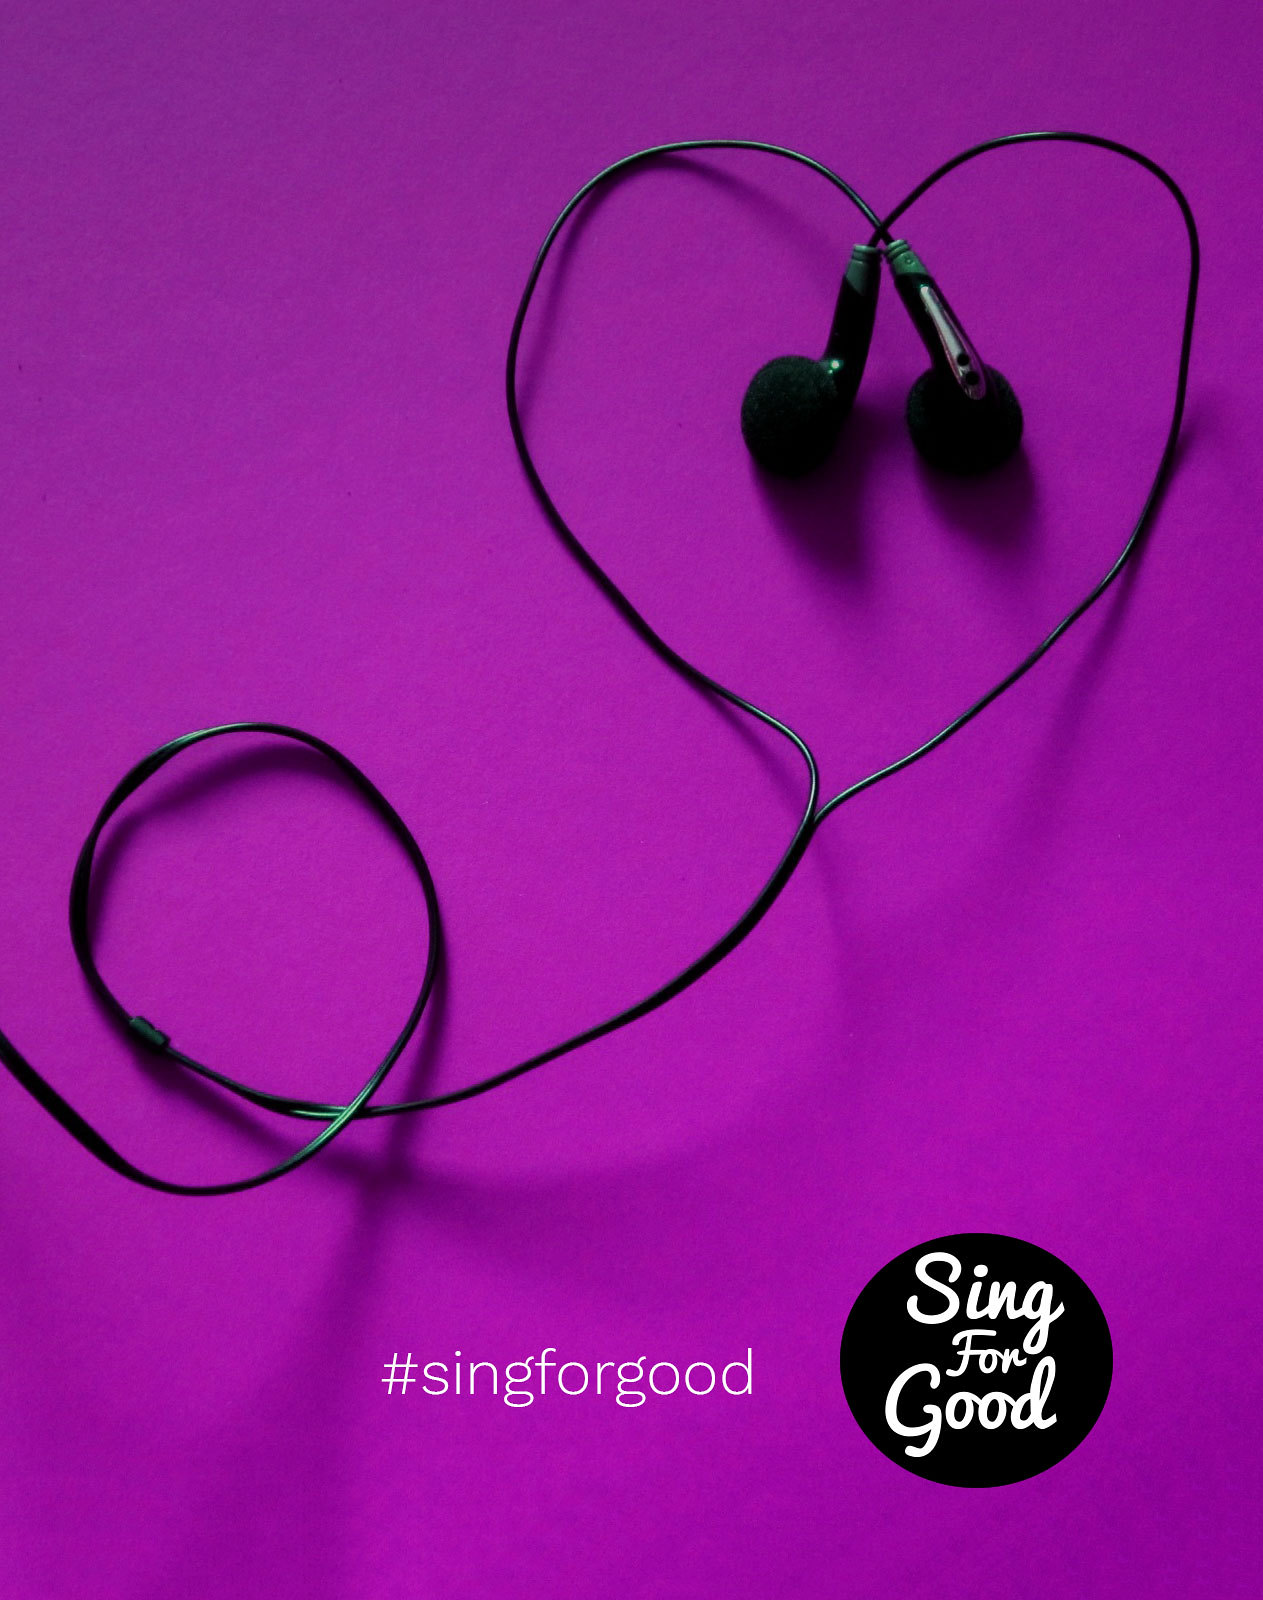 Sing for Good banner with headphones in a love heart shape